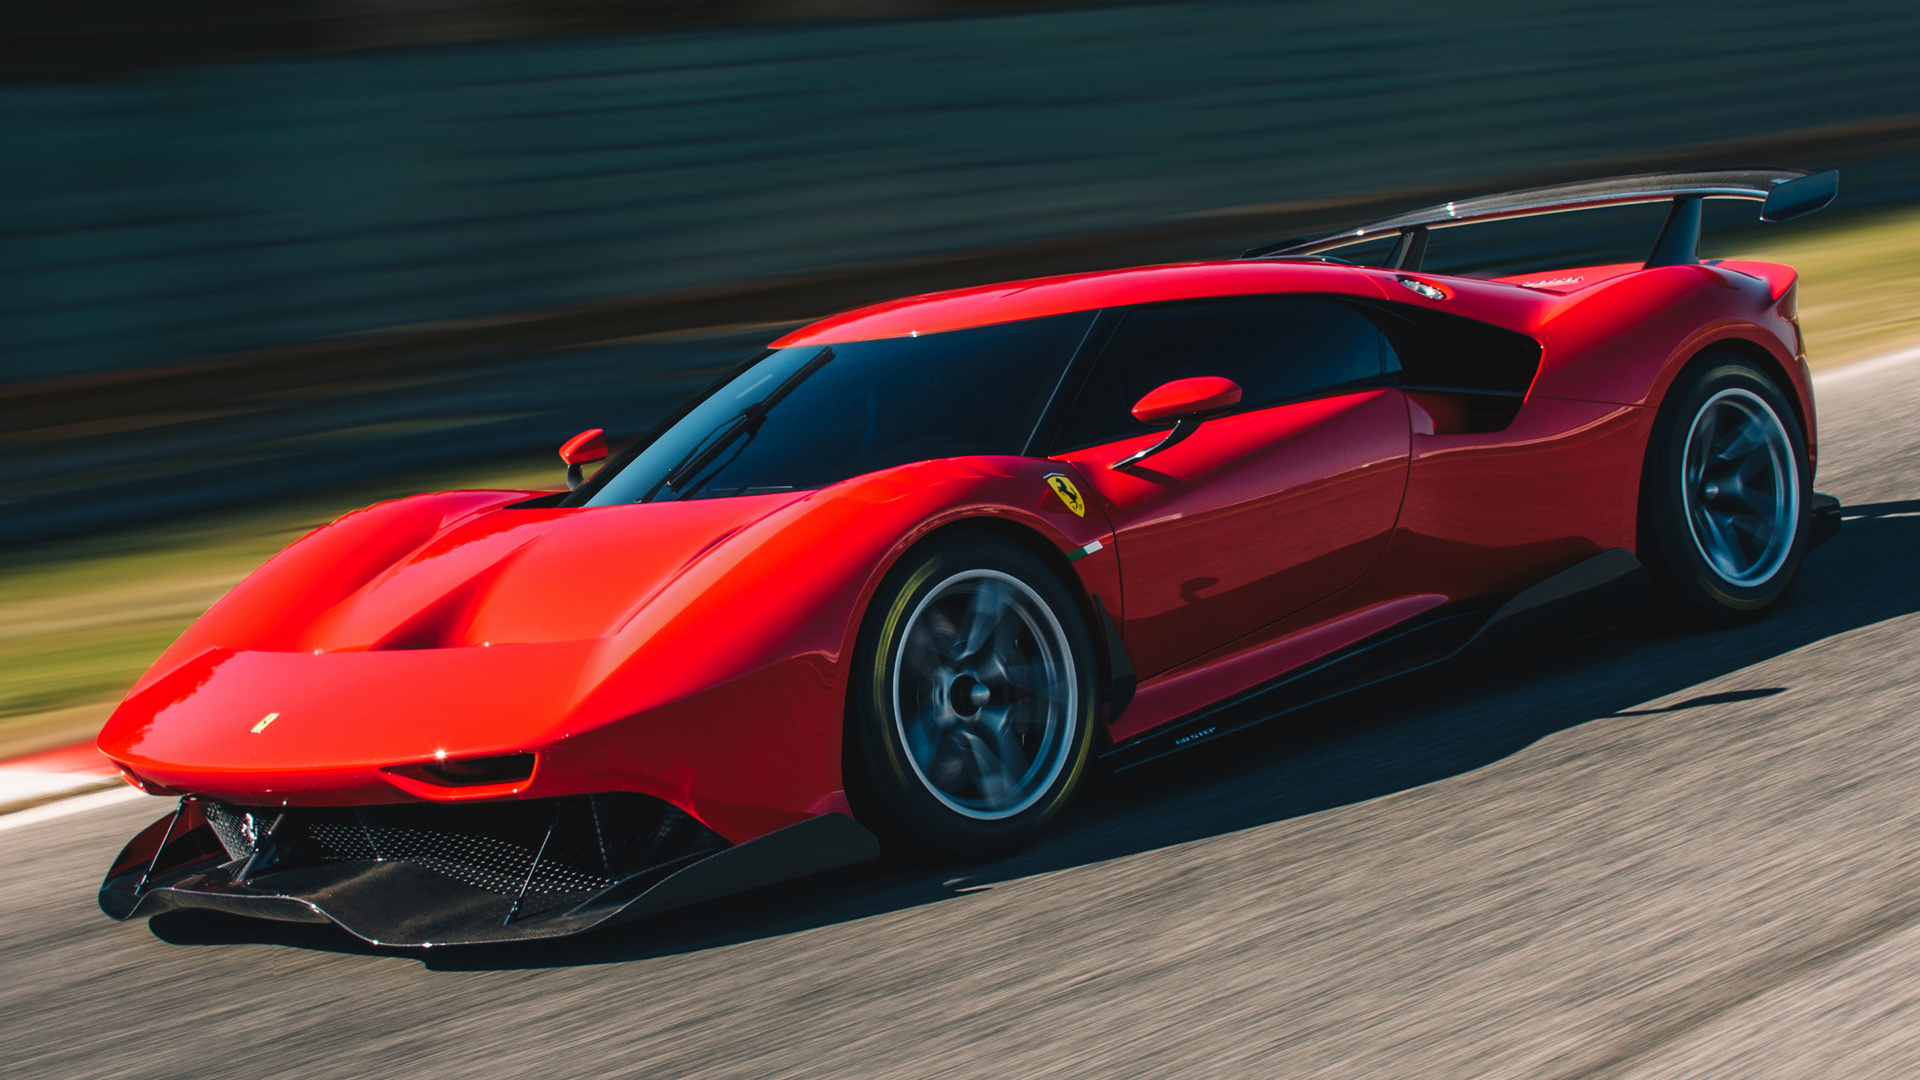 2019 Ferrari P80/C - Wallpapers and HD Images | Car Pixel